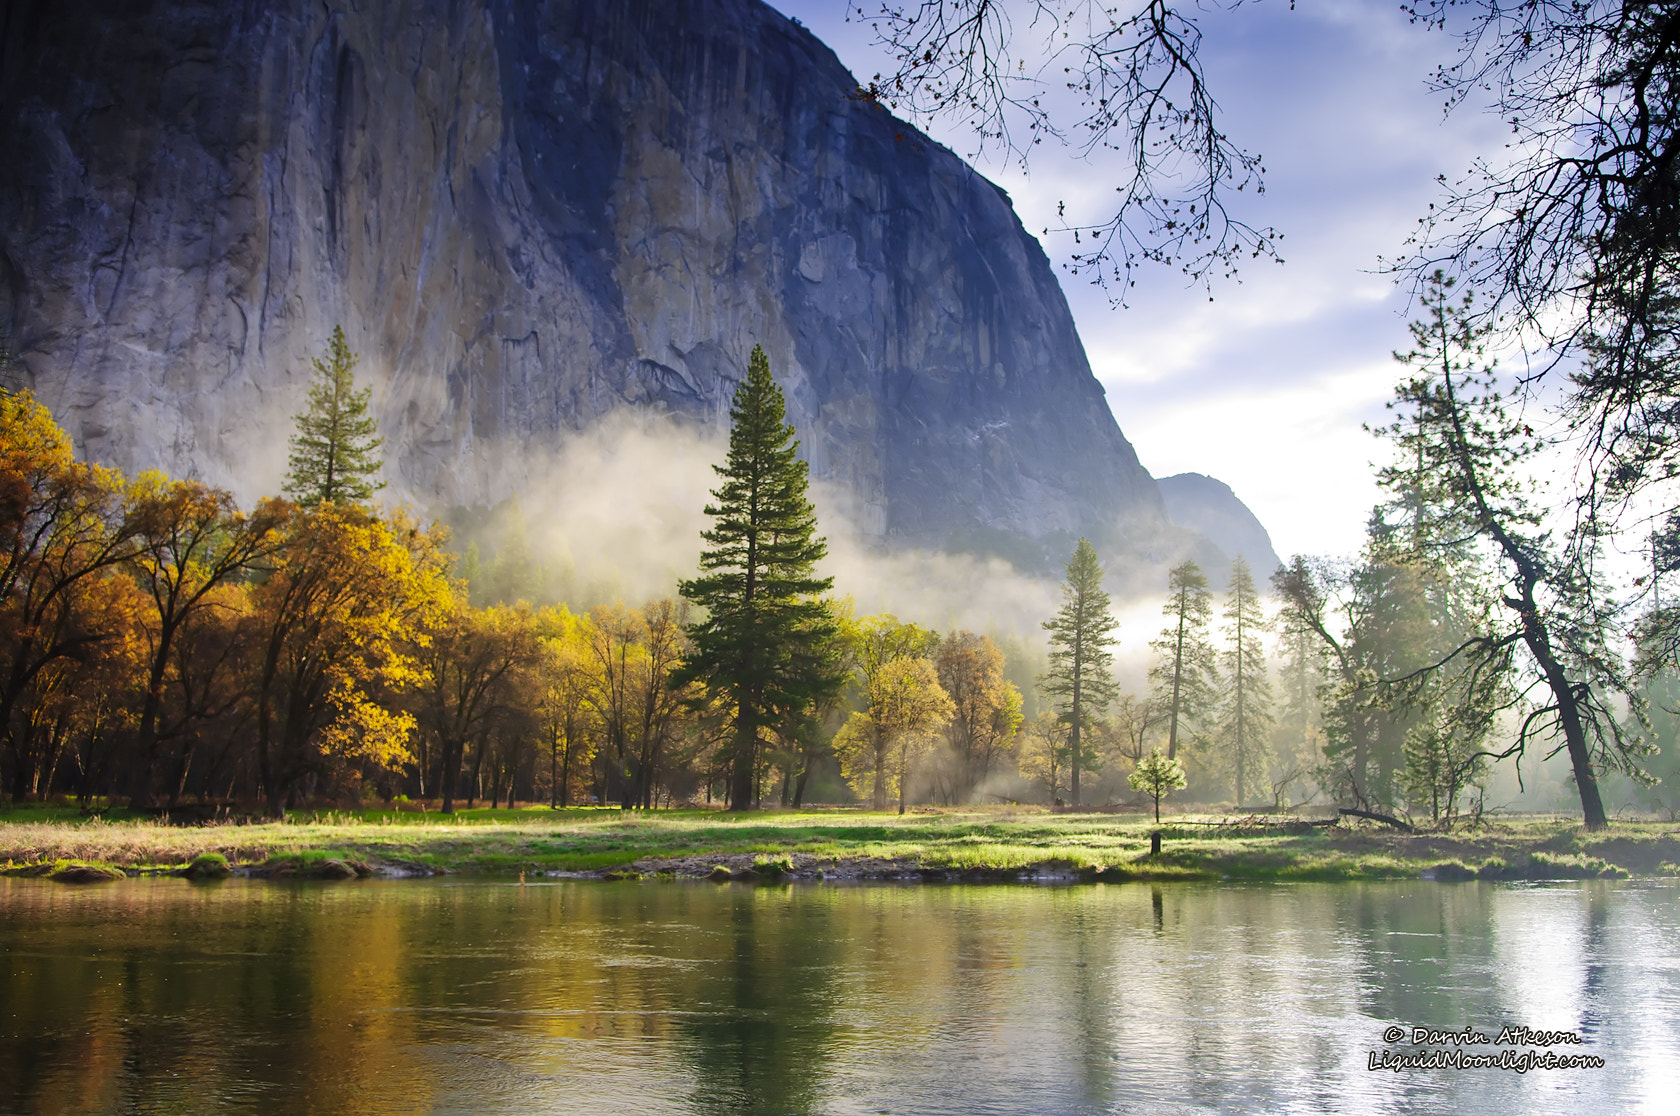 Photograph Mistical Magical Yosemite - Yosemite National Park California by Darvin Atkeson on 500px